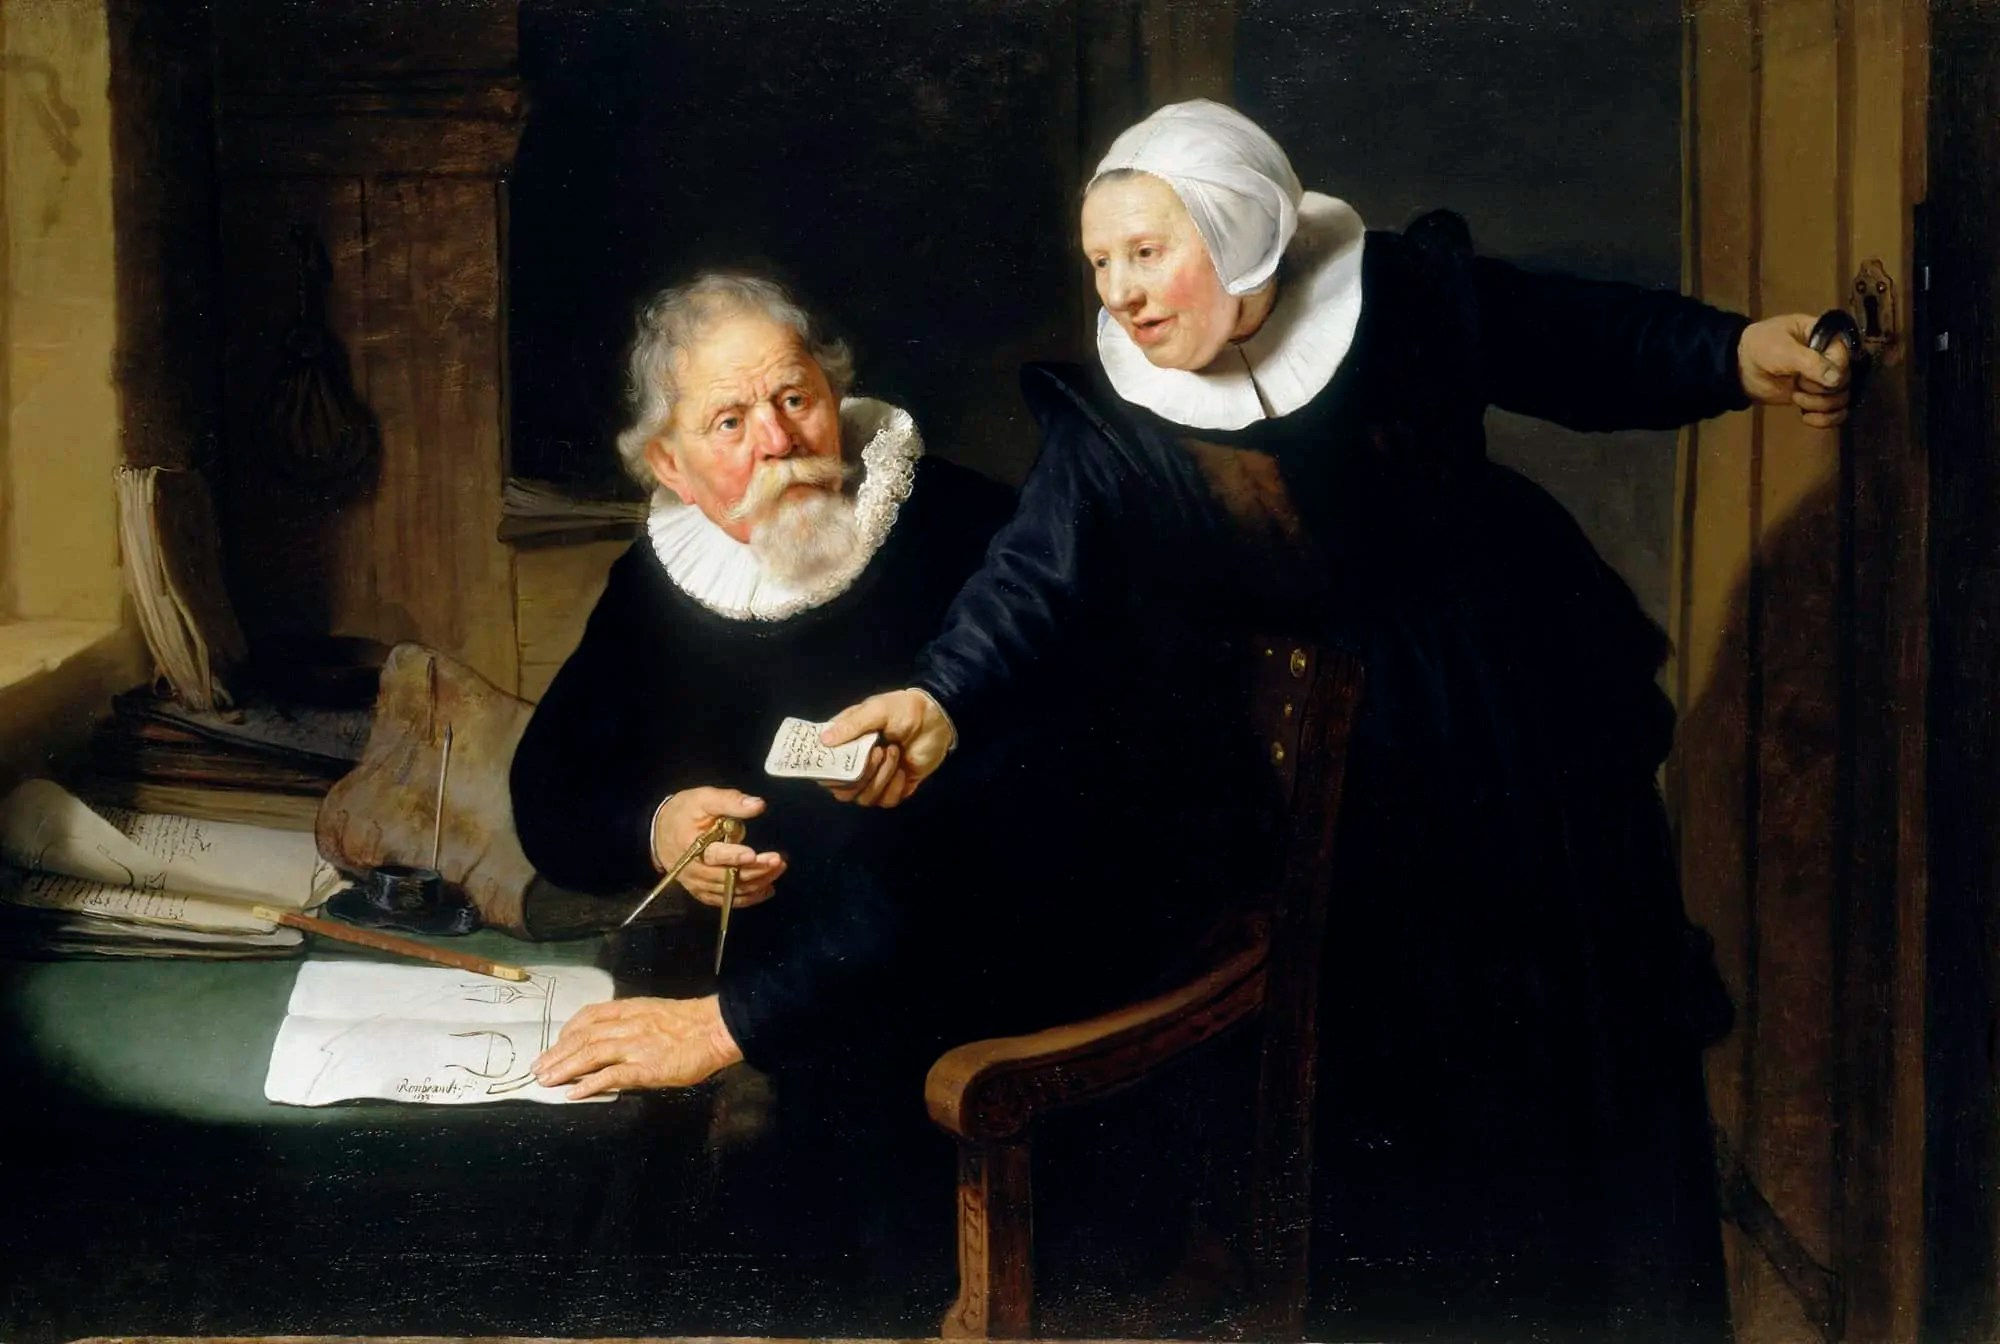 painting of man and woman dressing in black